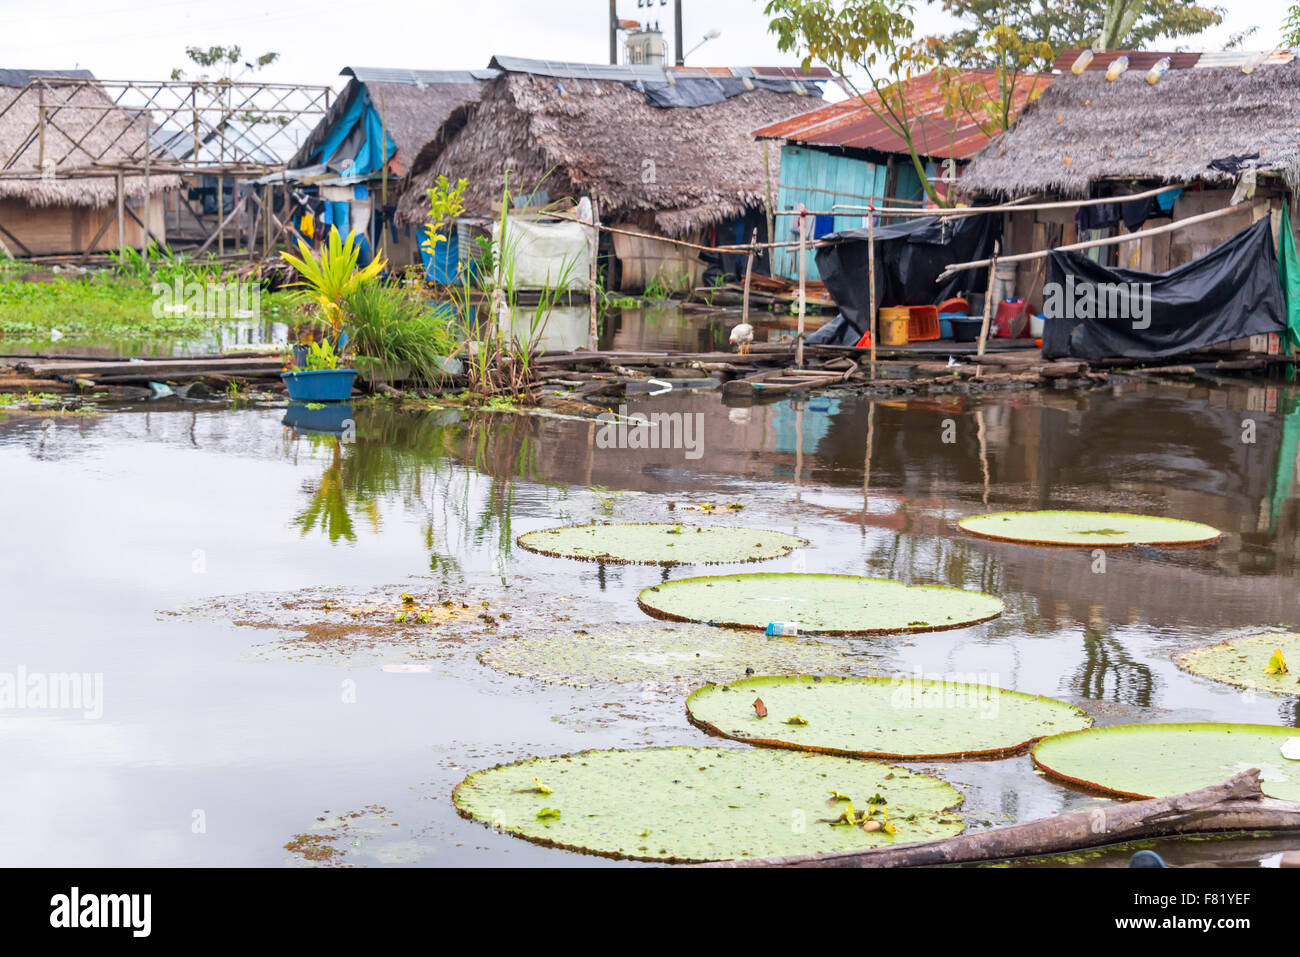 Victoria Amazonica, world's largest lily pad growing in a slum in Iquitos, Peru - Stock Image